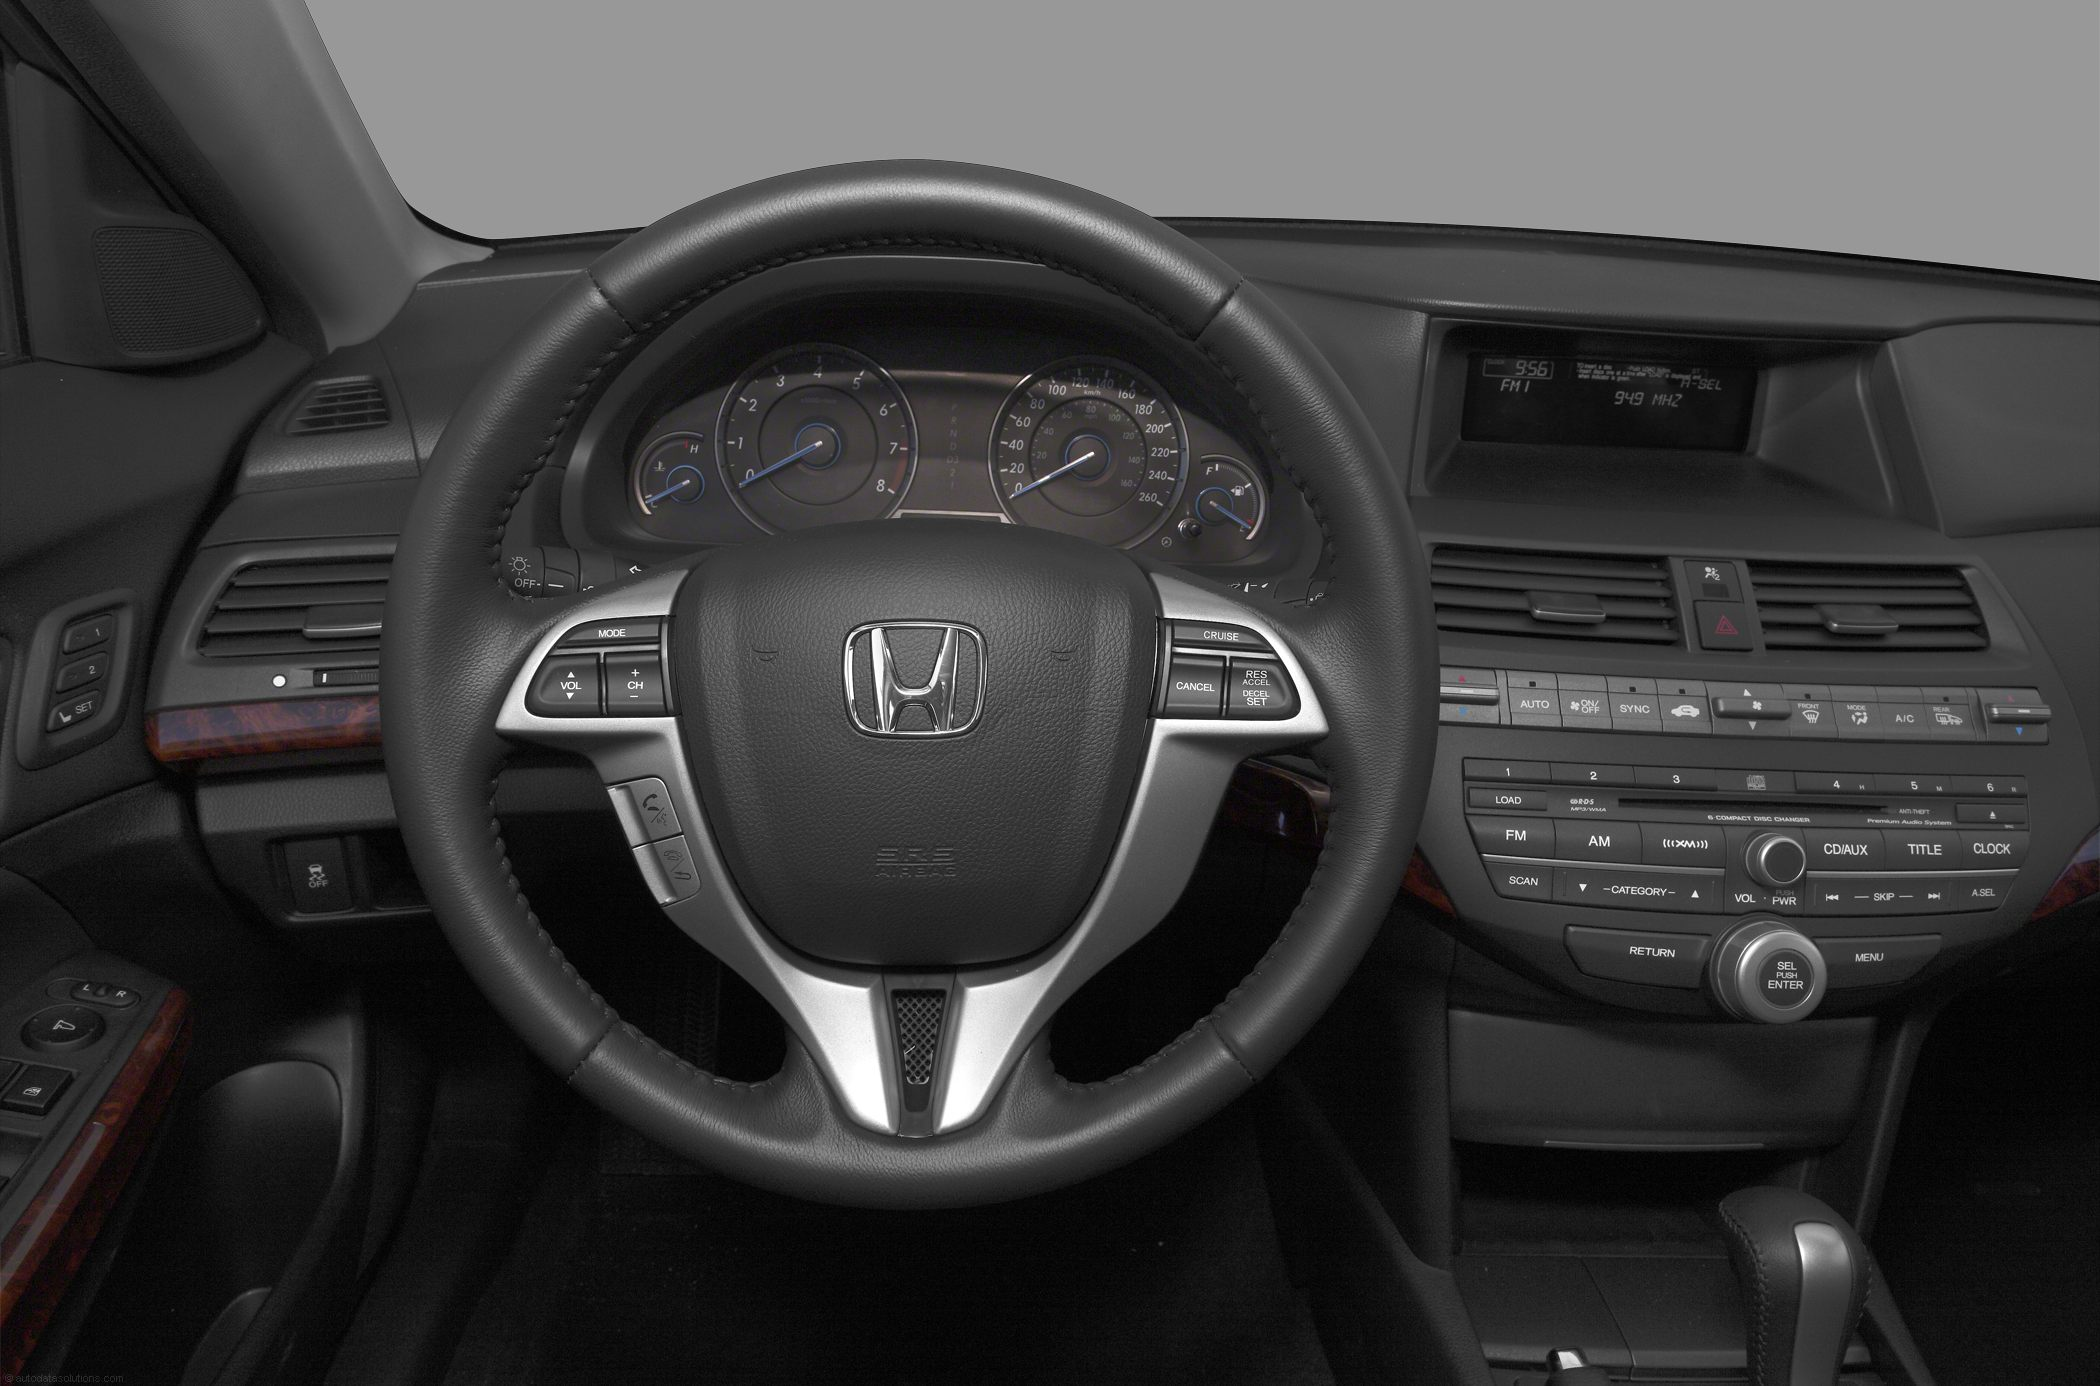 2011 Honda Accord Crosstour Image 19